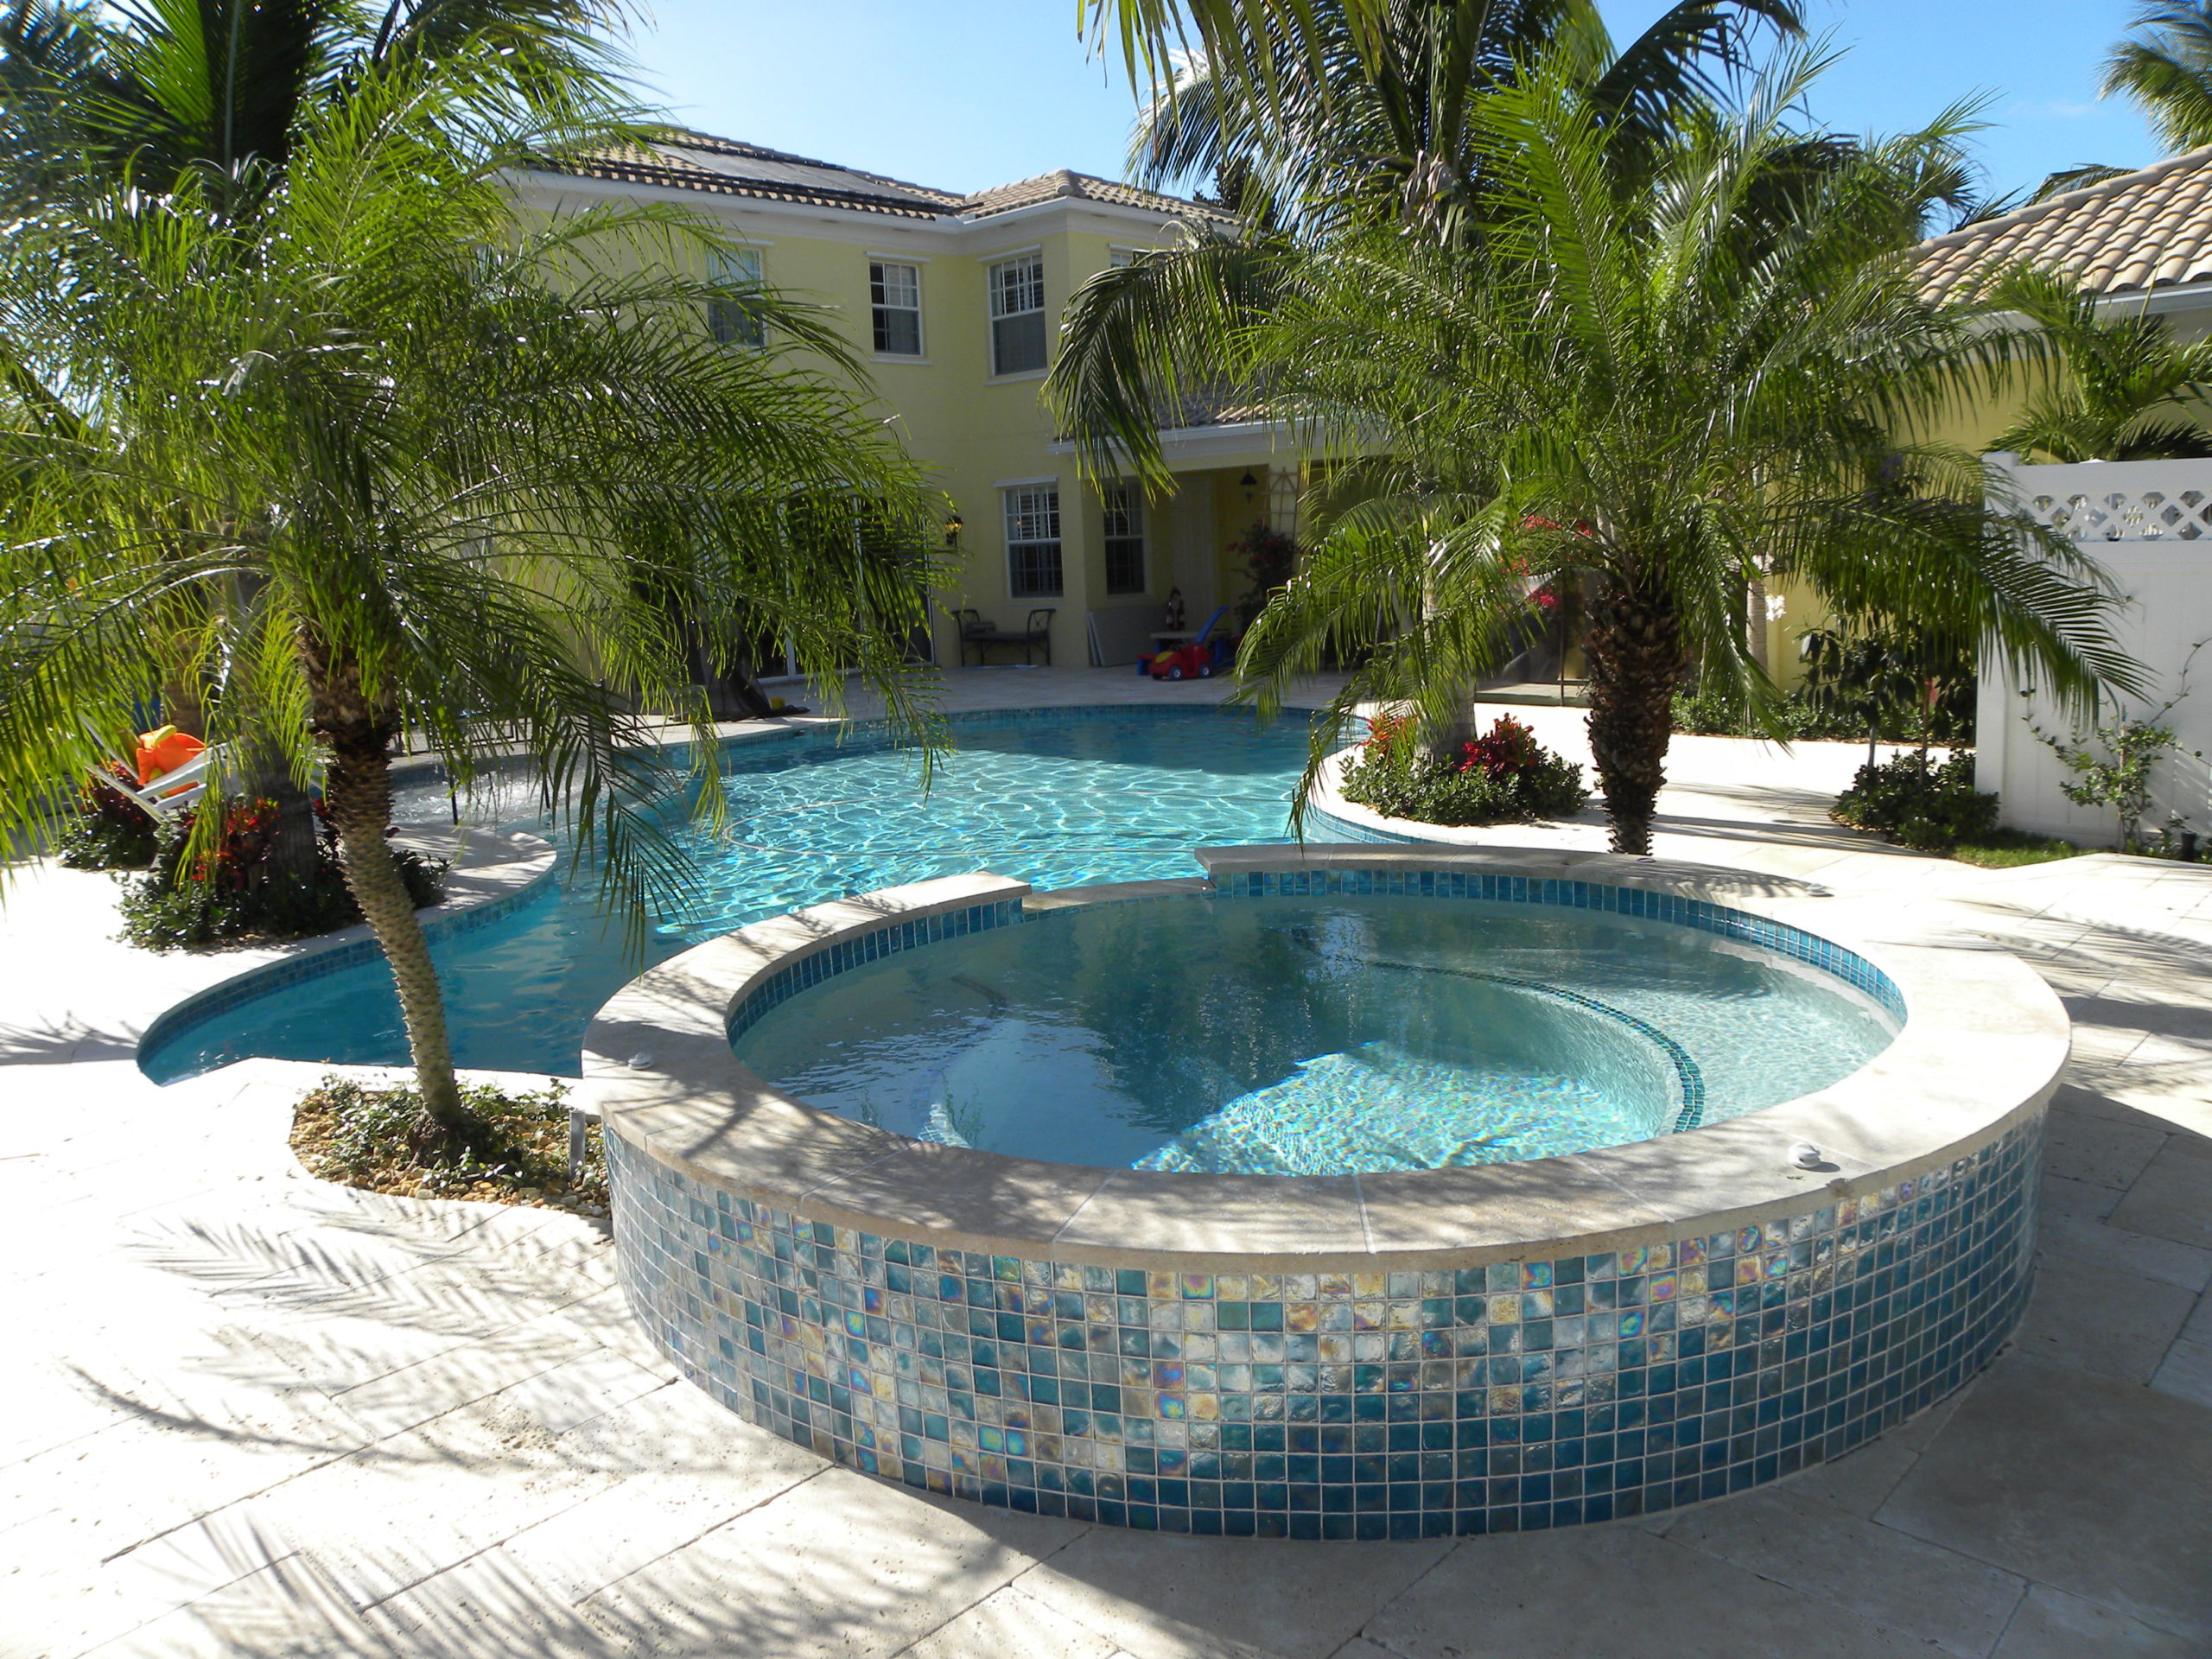 rhr pools of jupiter fl raised spa with glass tiles and organic shaped pool